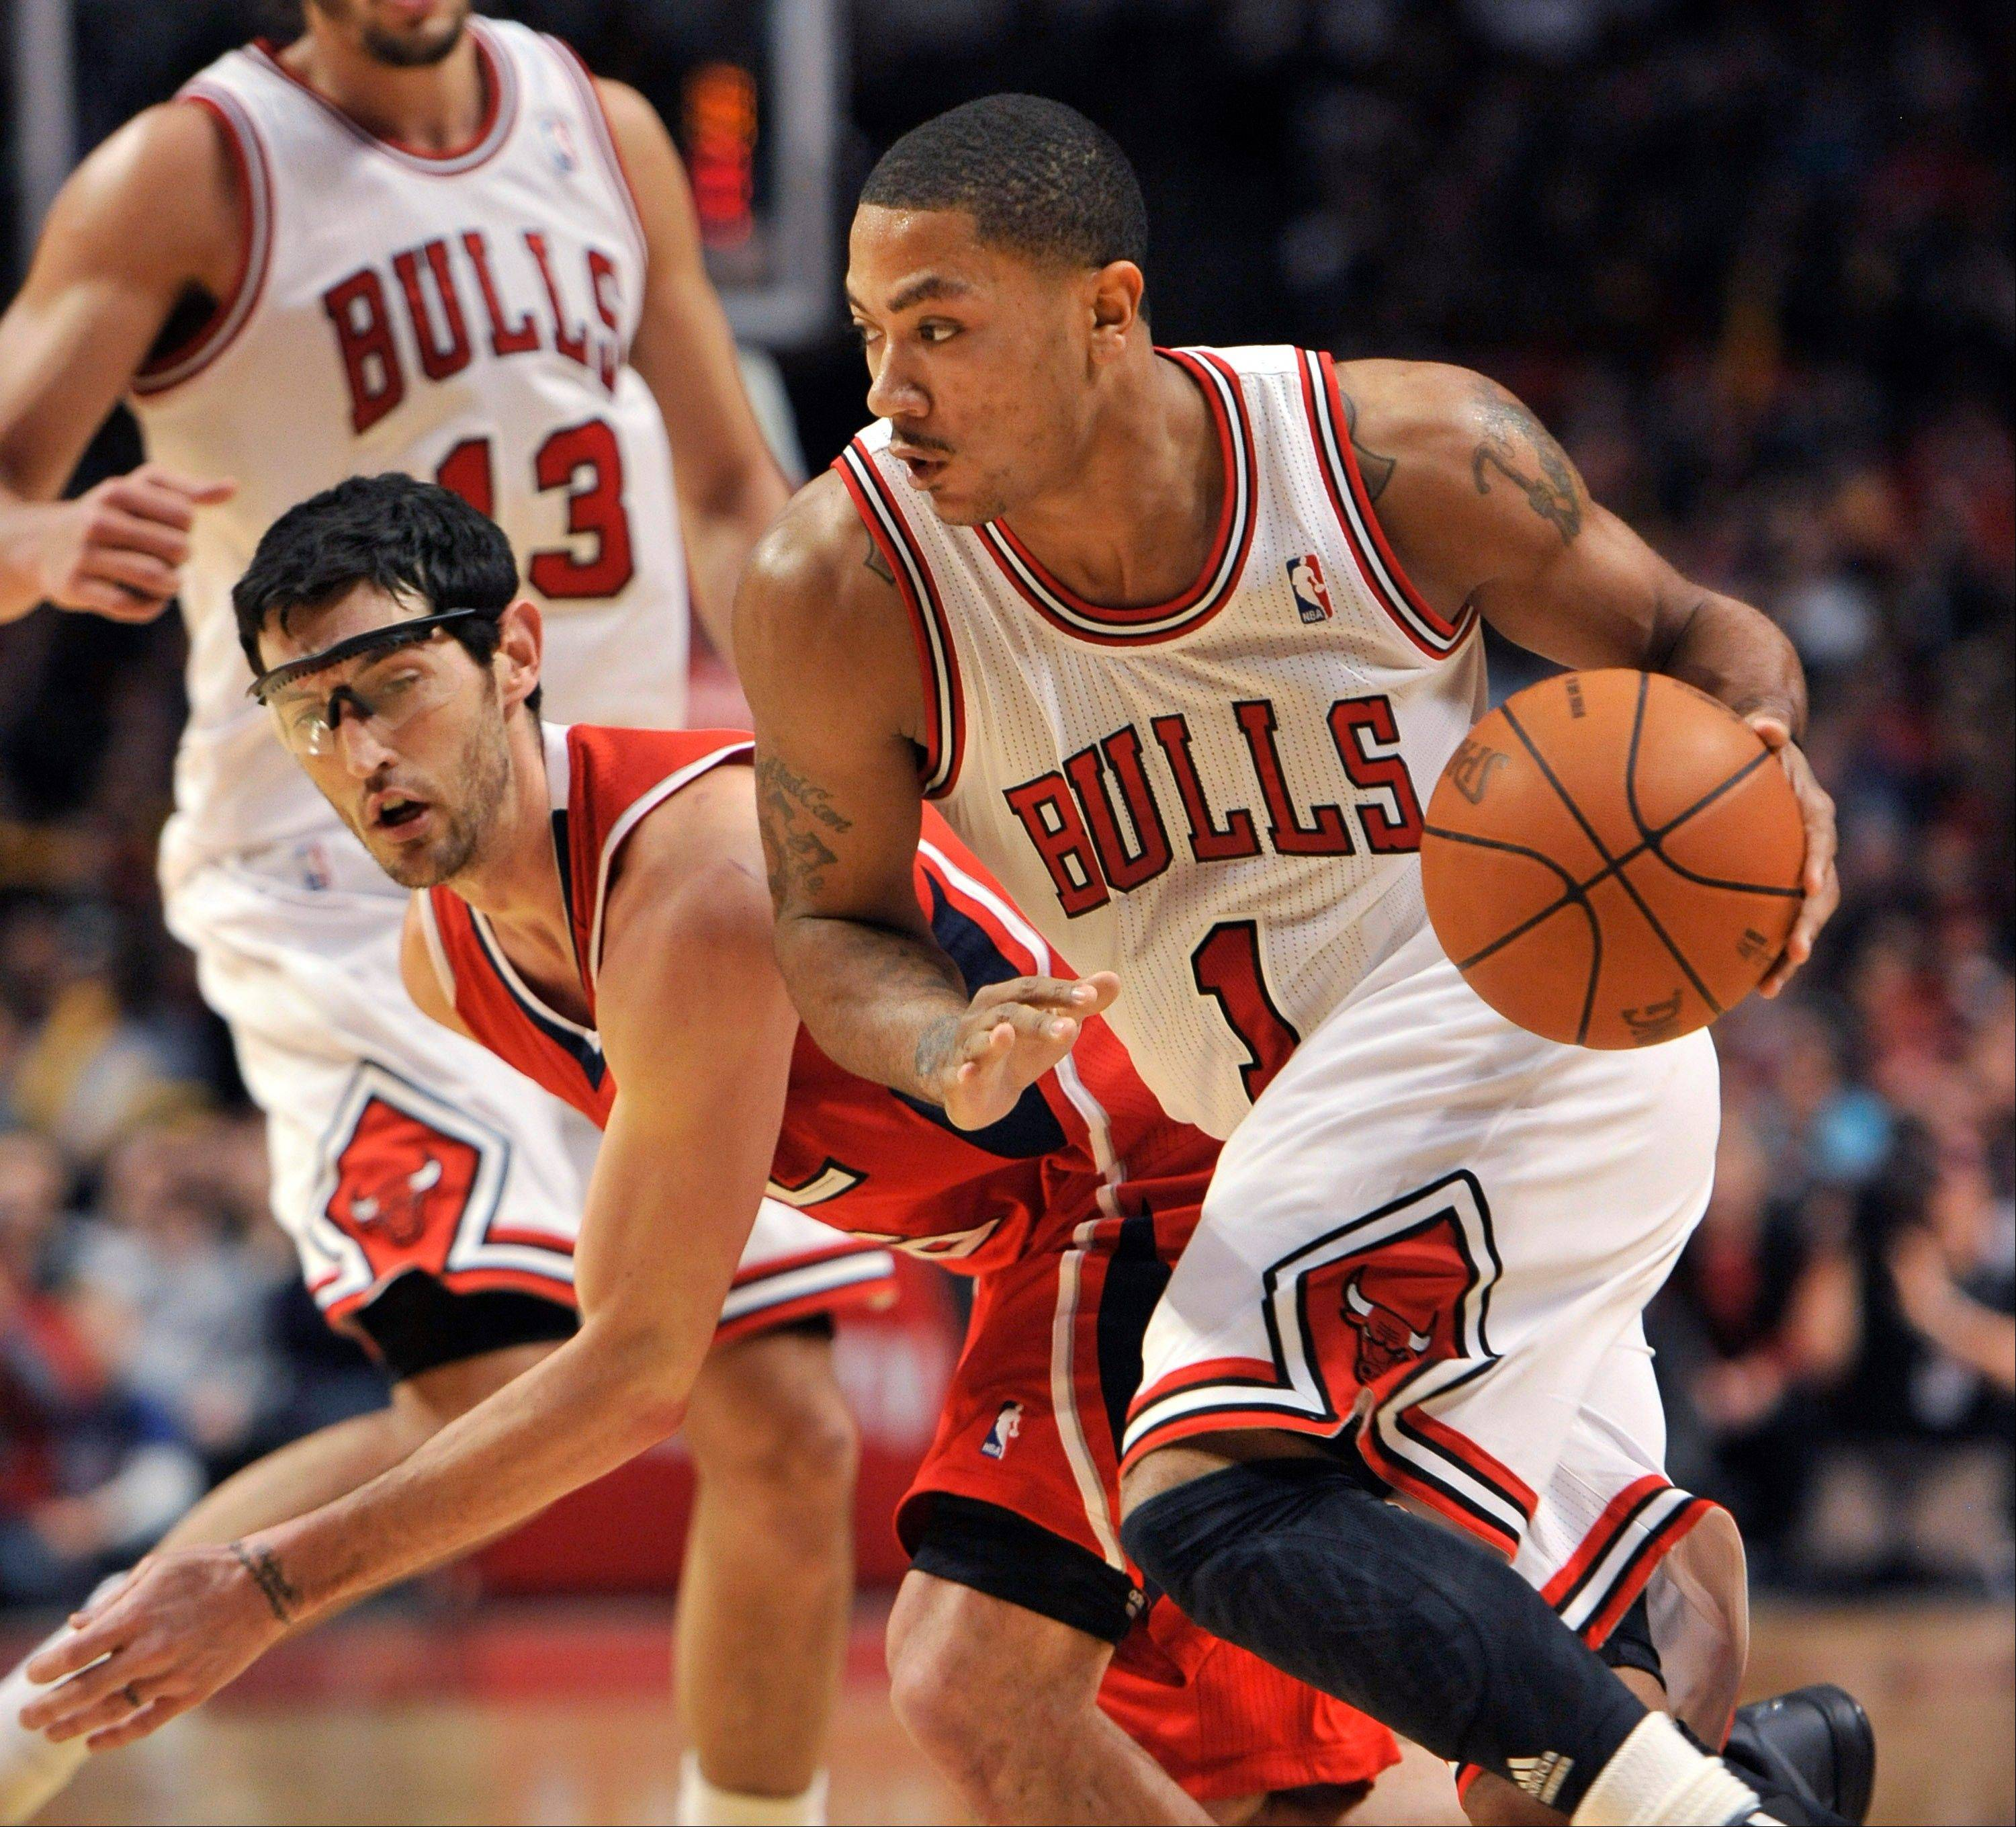 Bulls guard Derrick Rose drives past Atlanta Hawks guard Kirk Hinrich during the fourth quarter Monday.